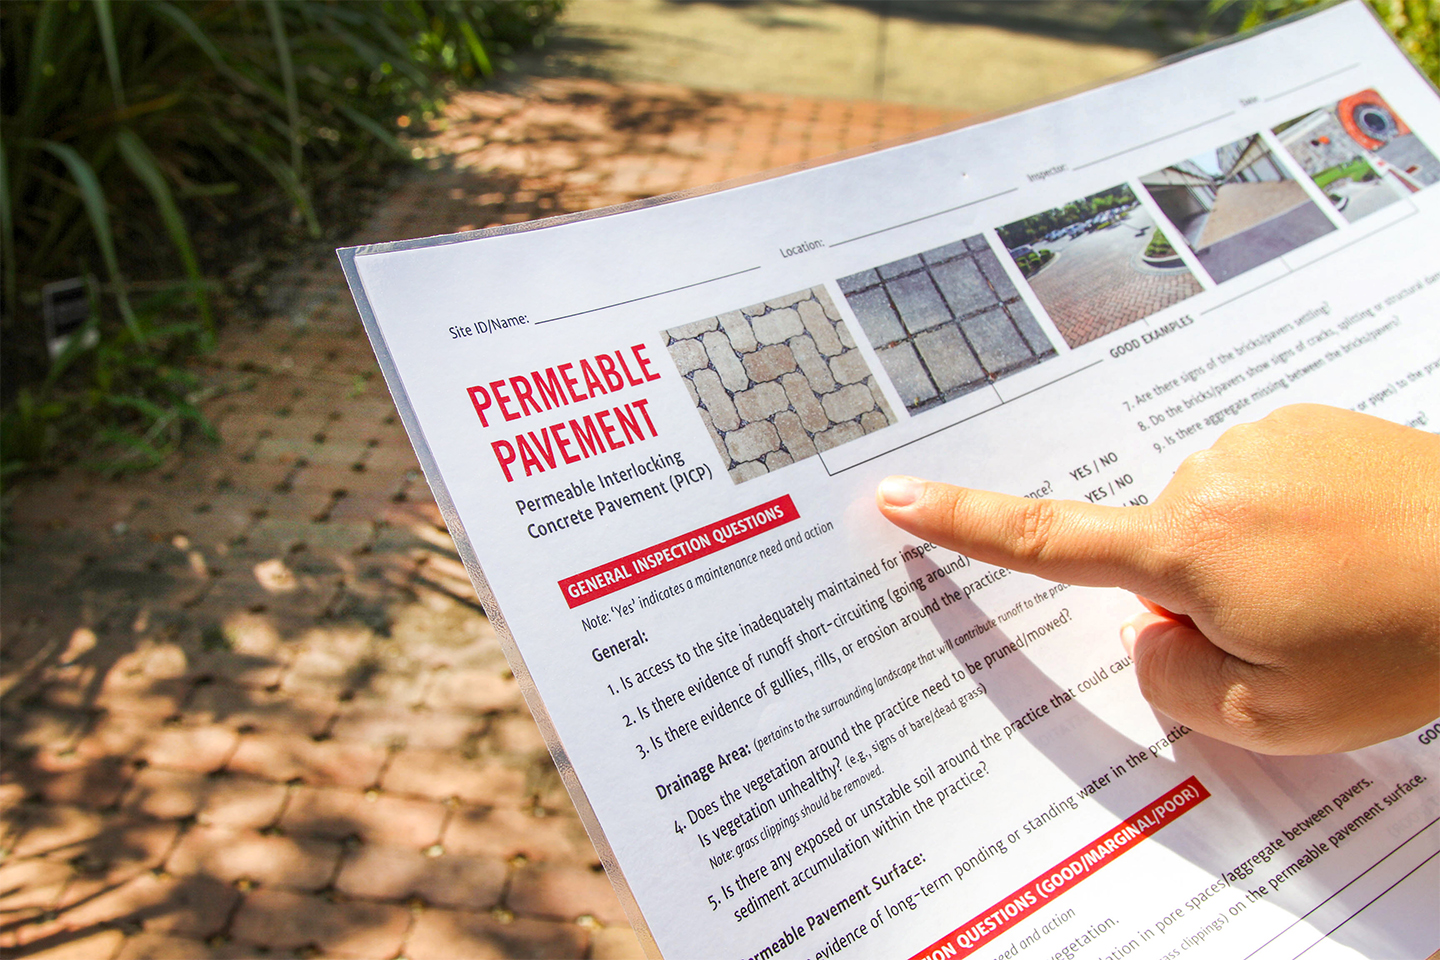 A finger points at a laminated document about permeable pavement options